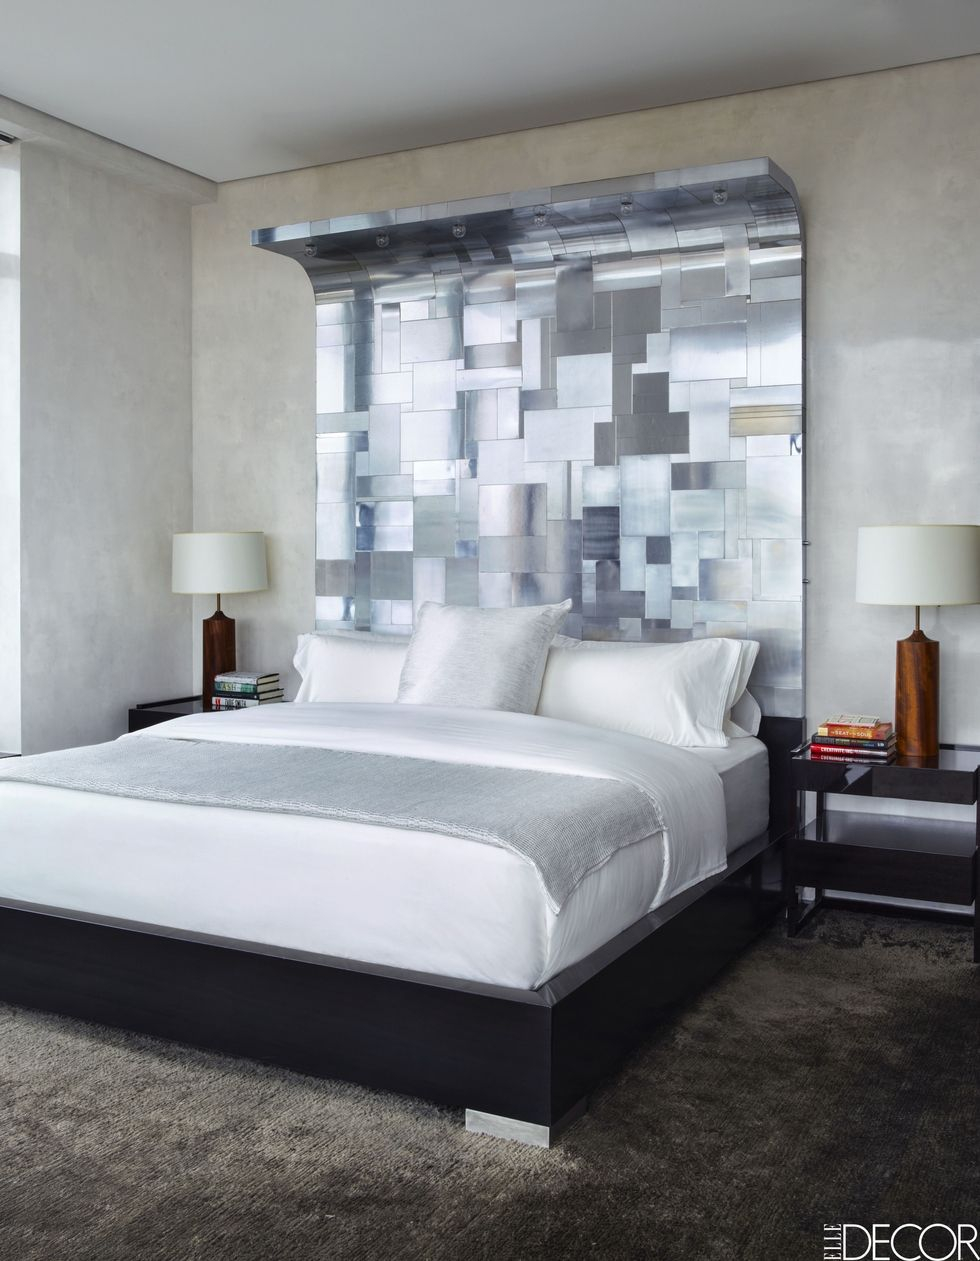 25 Inspiring Modern Bedroom Design Ideas within 12 Clever Concepts of How to Makeover Ideas For Modern Bedrooms